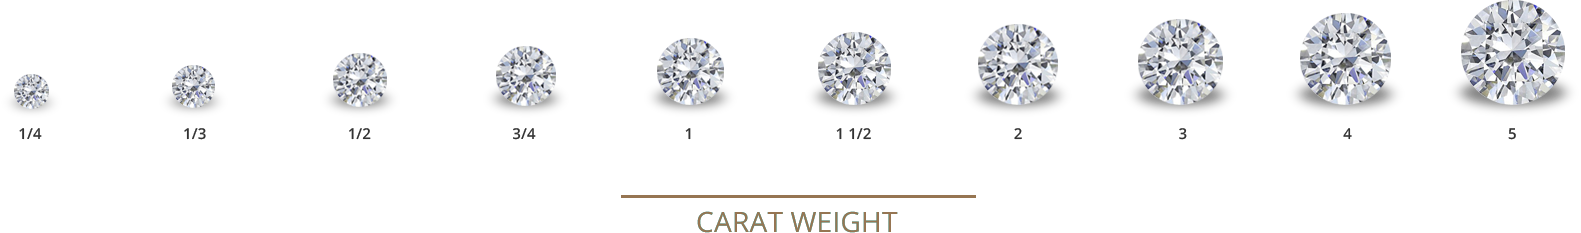 Carat is the unit in which a diamond is weighed. One carat equals to 0.2 grams or 200 milligrams. Carat weight is the prime factor that determines the weight of a diamond. Larger diamonds are undoubtedly costlier. Carat makes expressing diamond weight easier as compared to milligrams. Instead of giving three labels to diamonds weighing 20 milligrams, 211 milligrams and 220 milligrams, carat offers a category for fitting the diamonds in a one category, placing these diamonds in one-carat range.